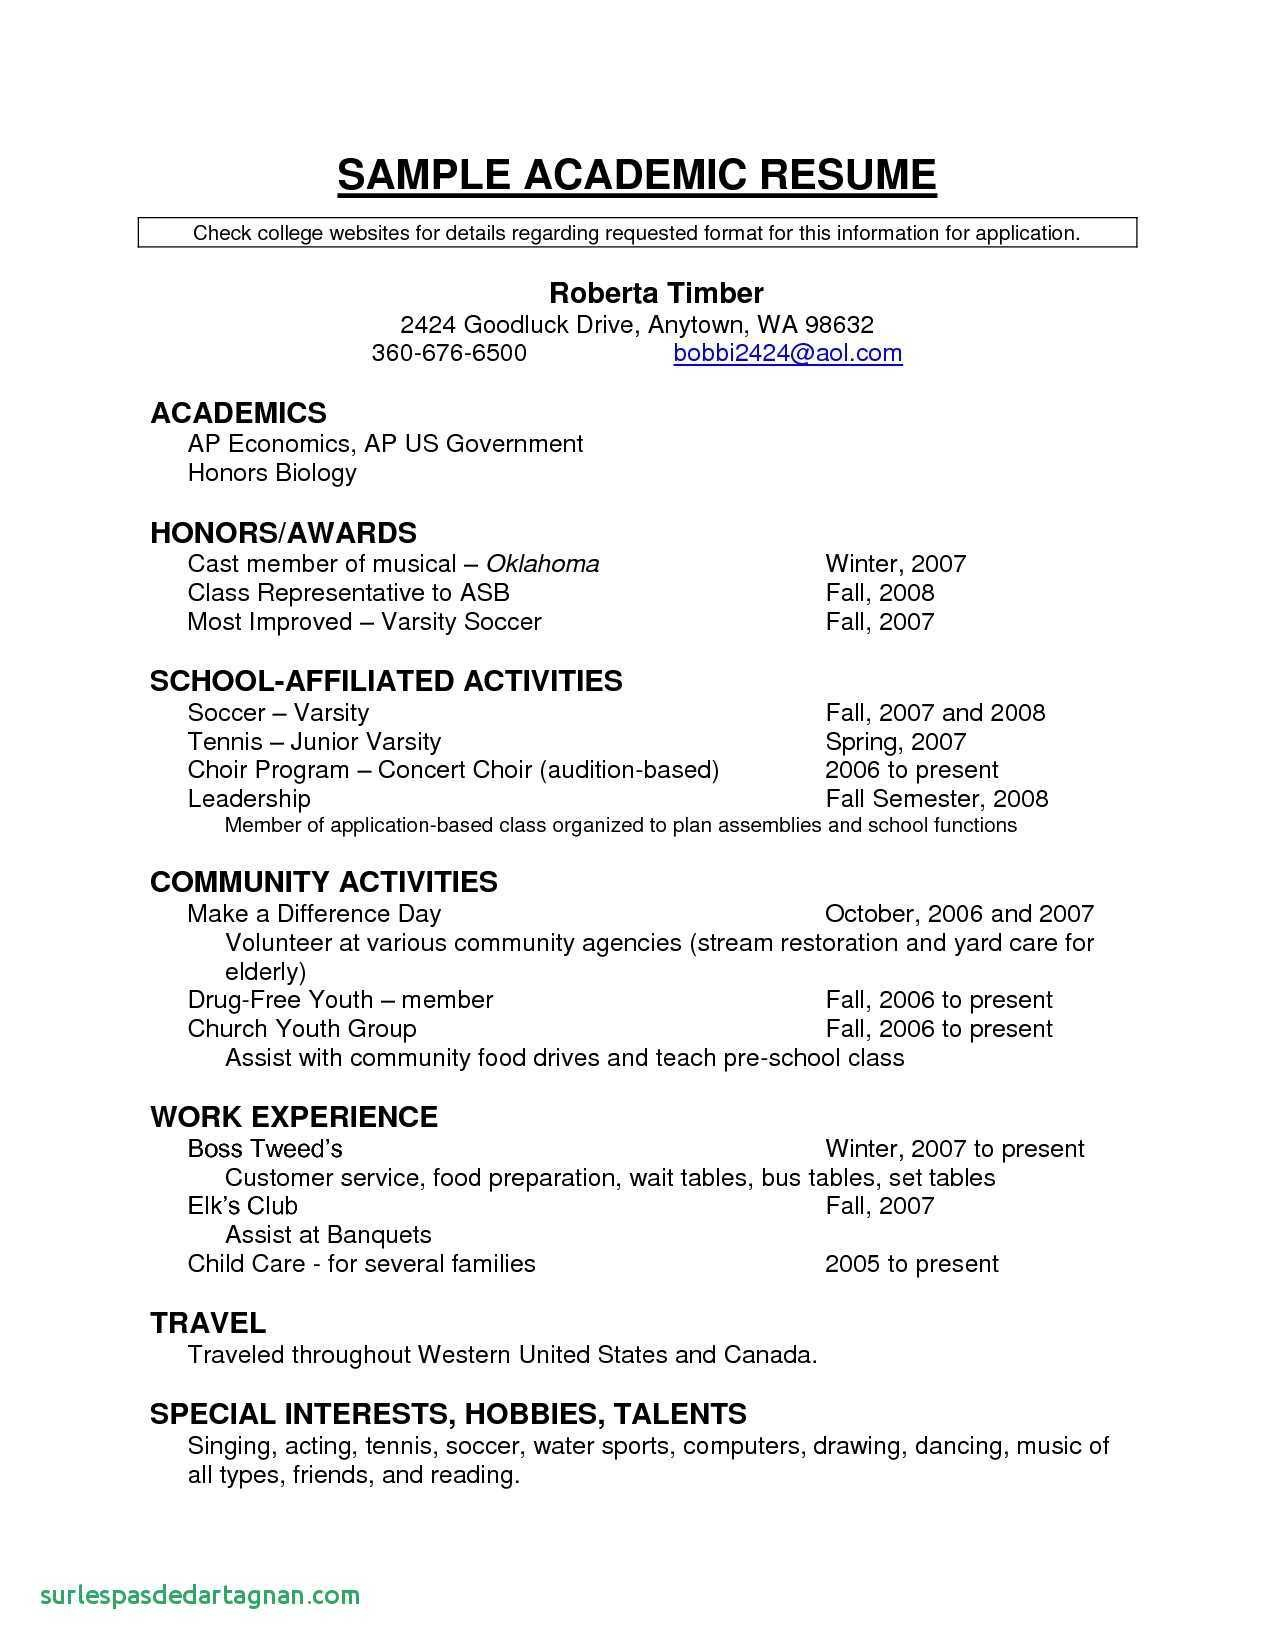 Resume Template for 16 Year Old - Good Resume Examples Luxury Best 16 Year Old Resume Radio Viva